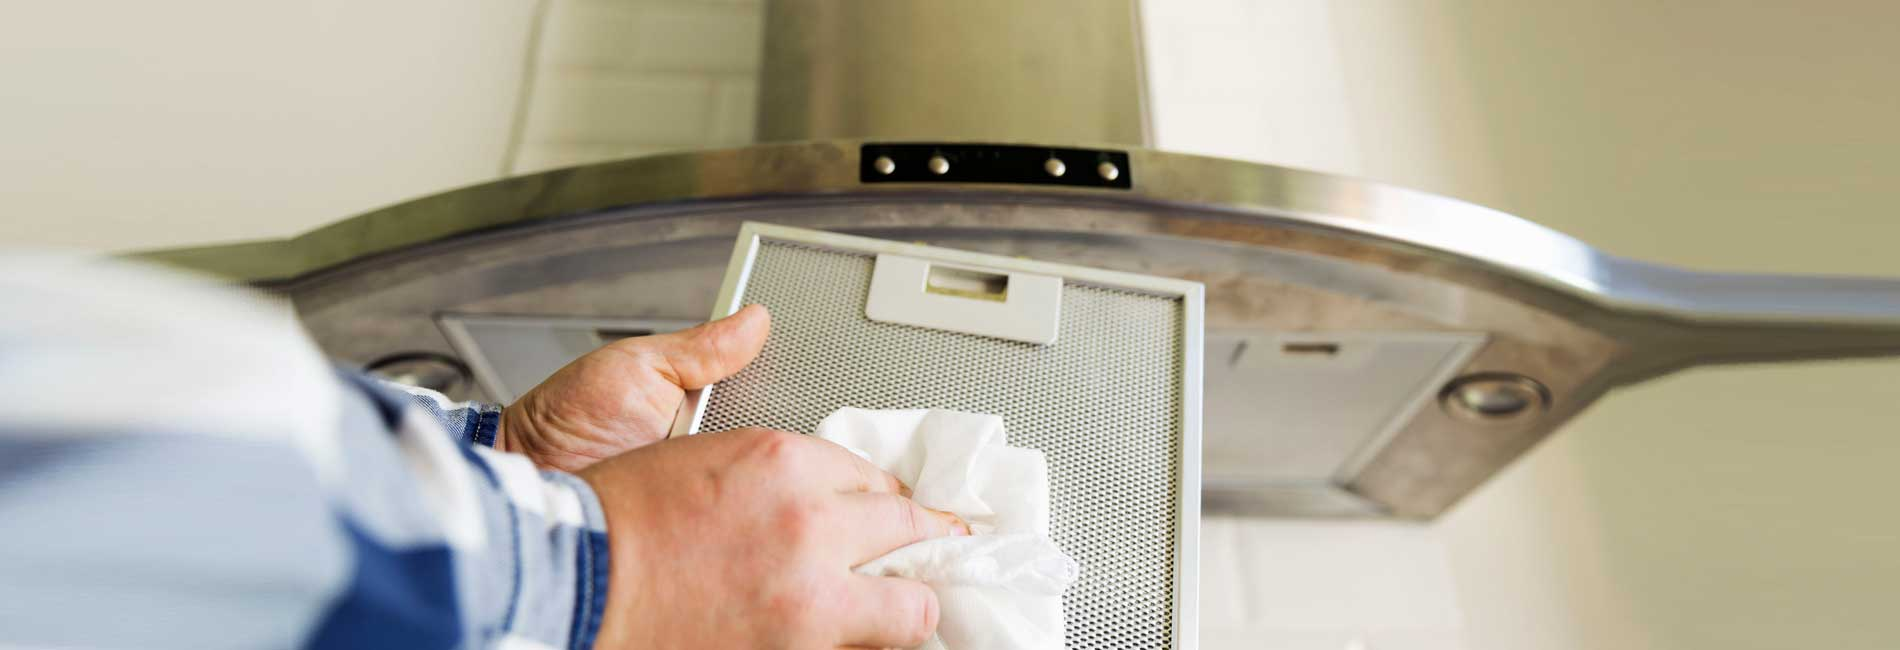 Hindware Chimney Cleaning Service in Sholinganallur